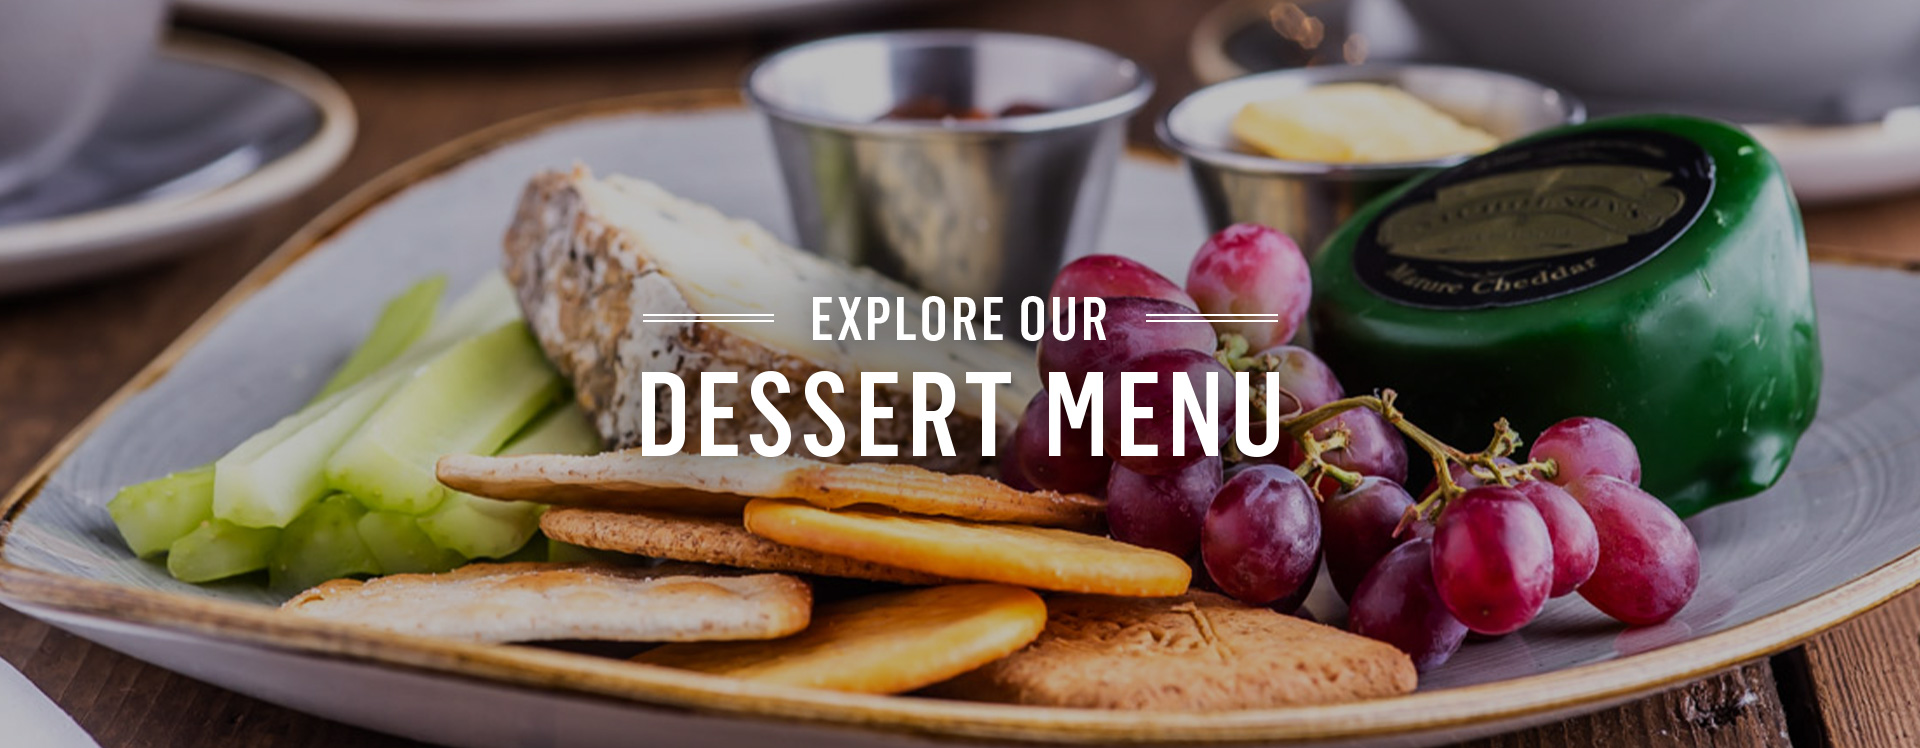 Dessert menu at The Punch Bowl - Book a table